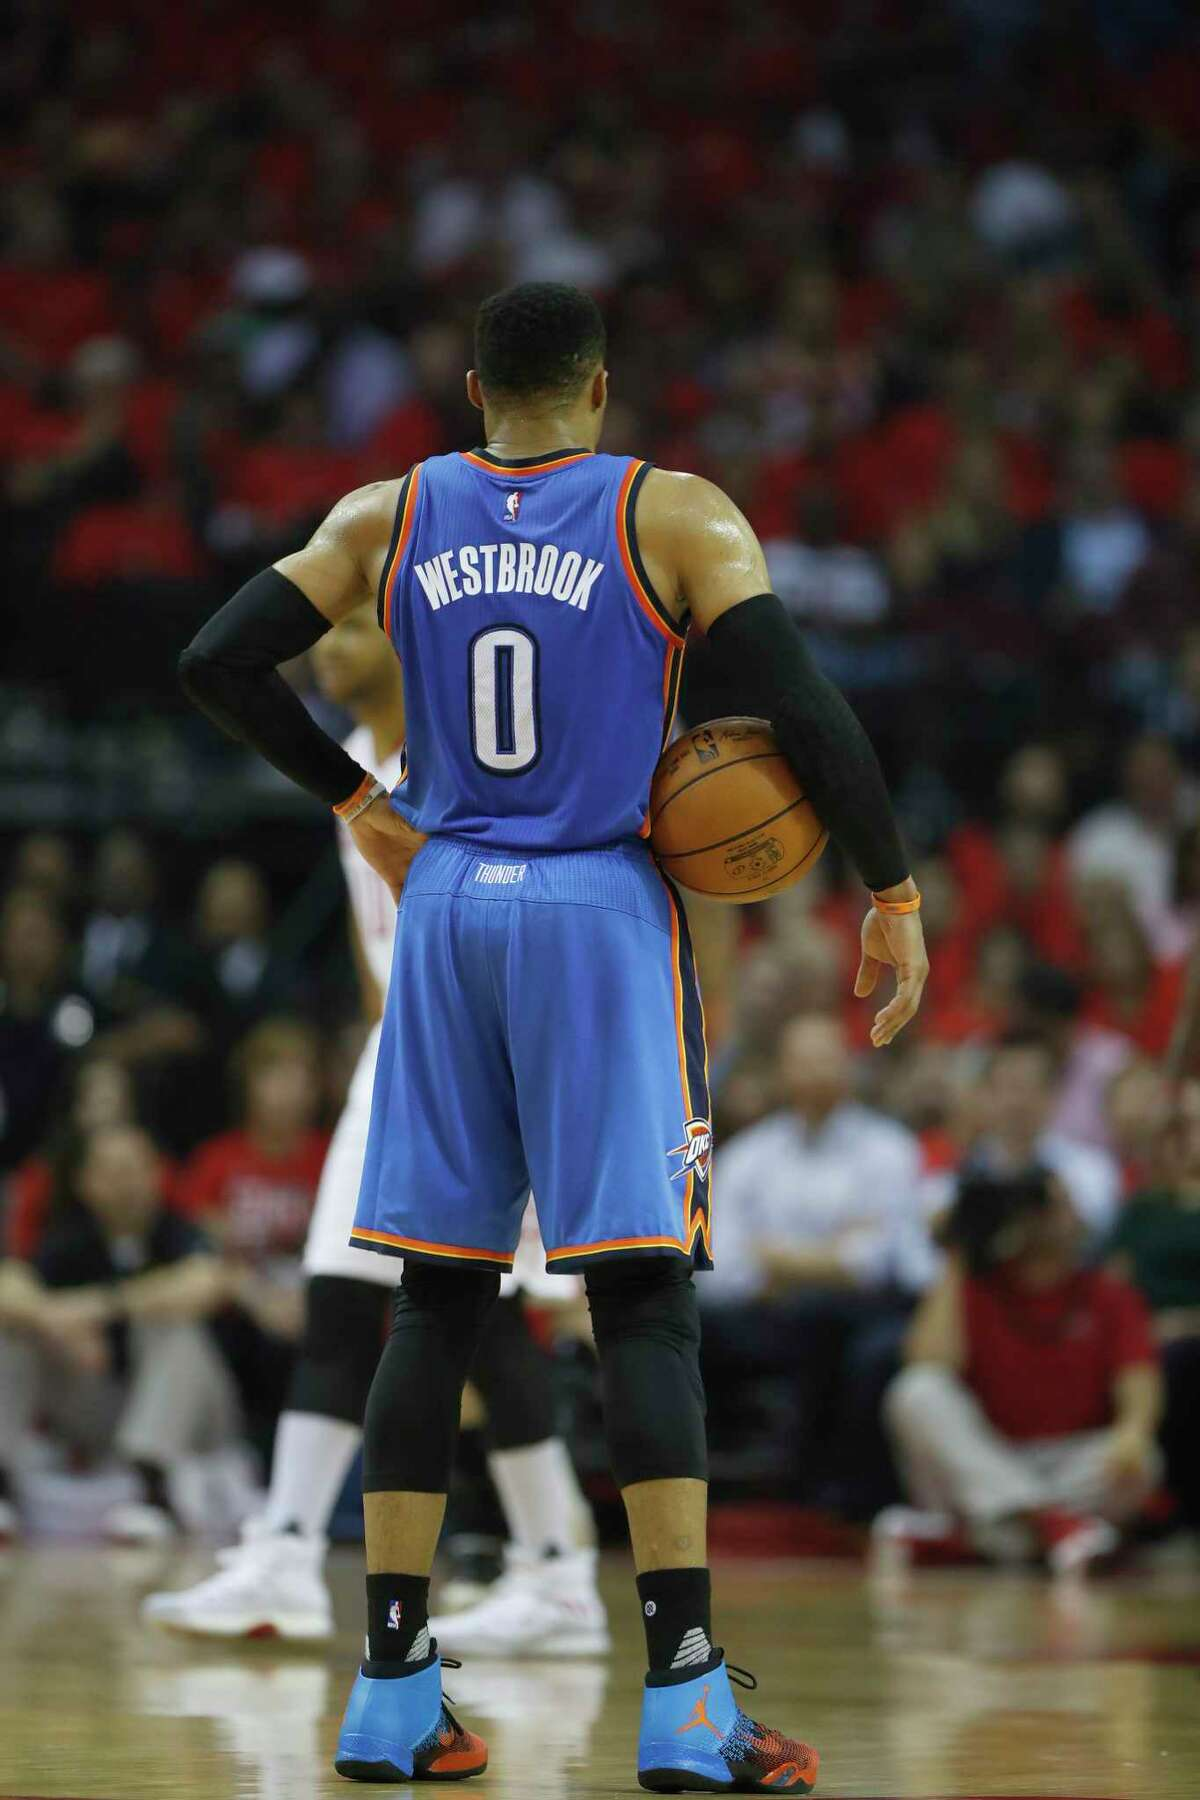 Oklahoma City Thunder guard Russell Westbrook (0) in the first half of Game 5 of a Western Conference quarterfinals of the 2017 NBA playoffs, April 24, 2017, in Houston. ( Karen Warren / Houston Chronicle )